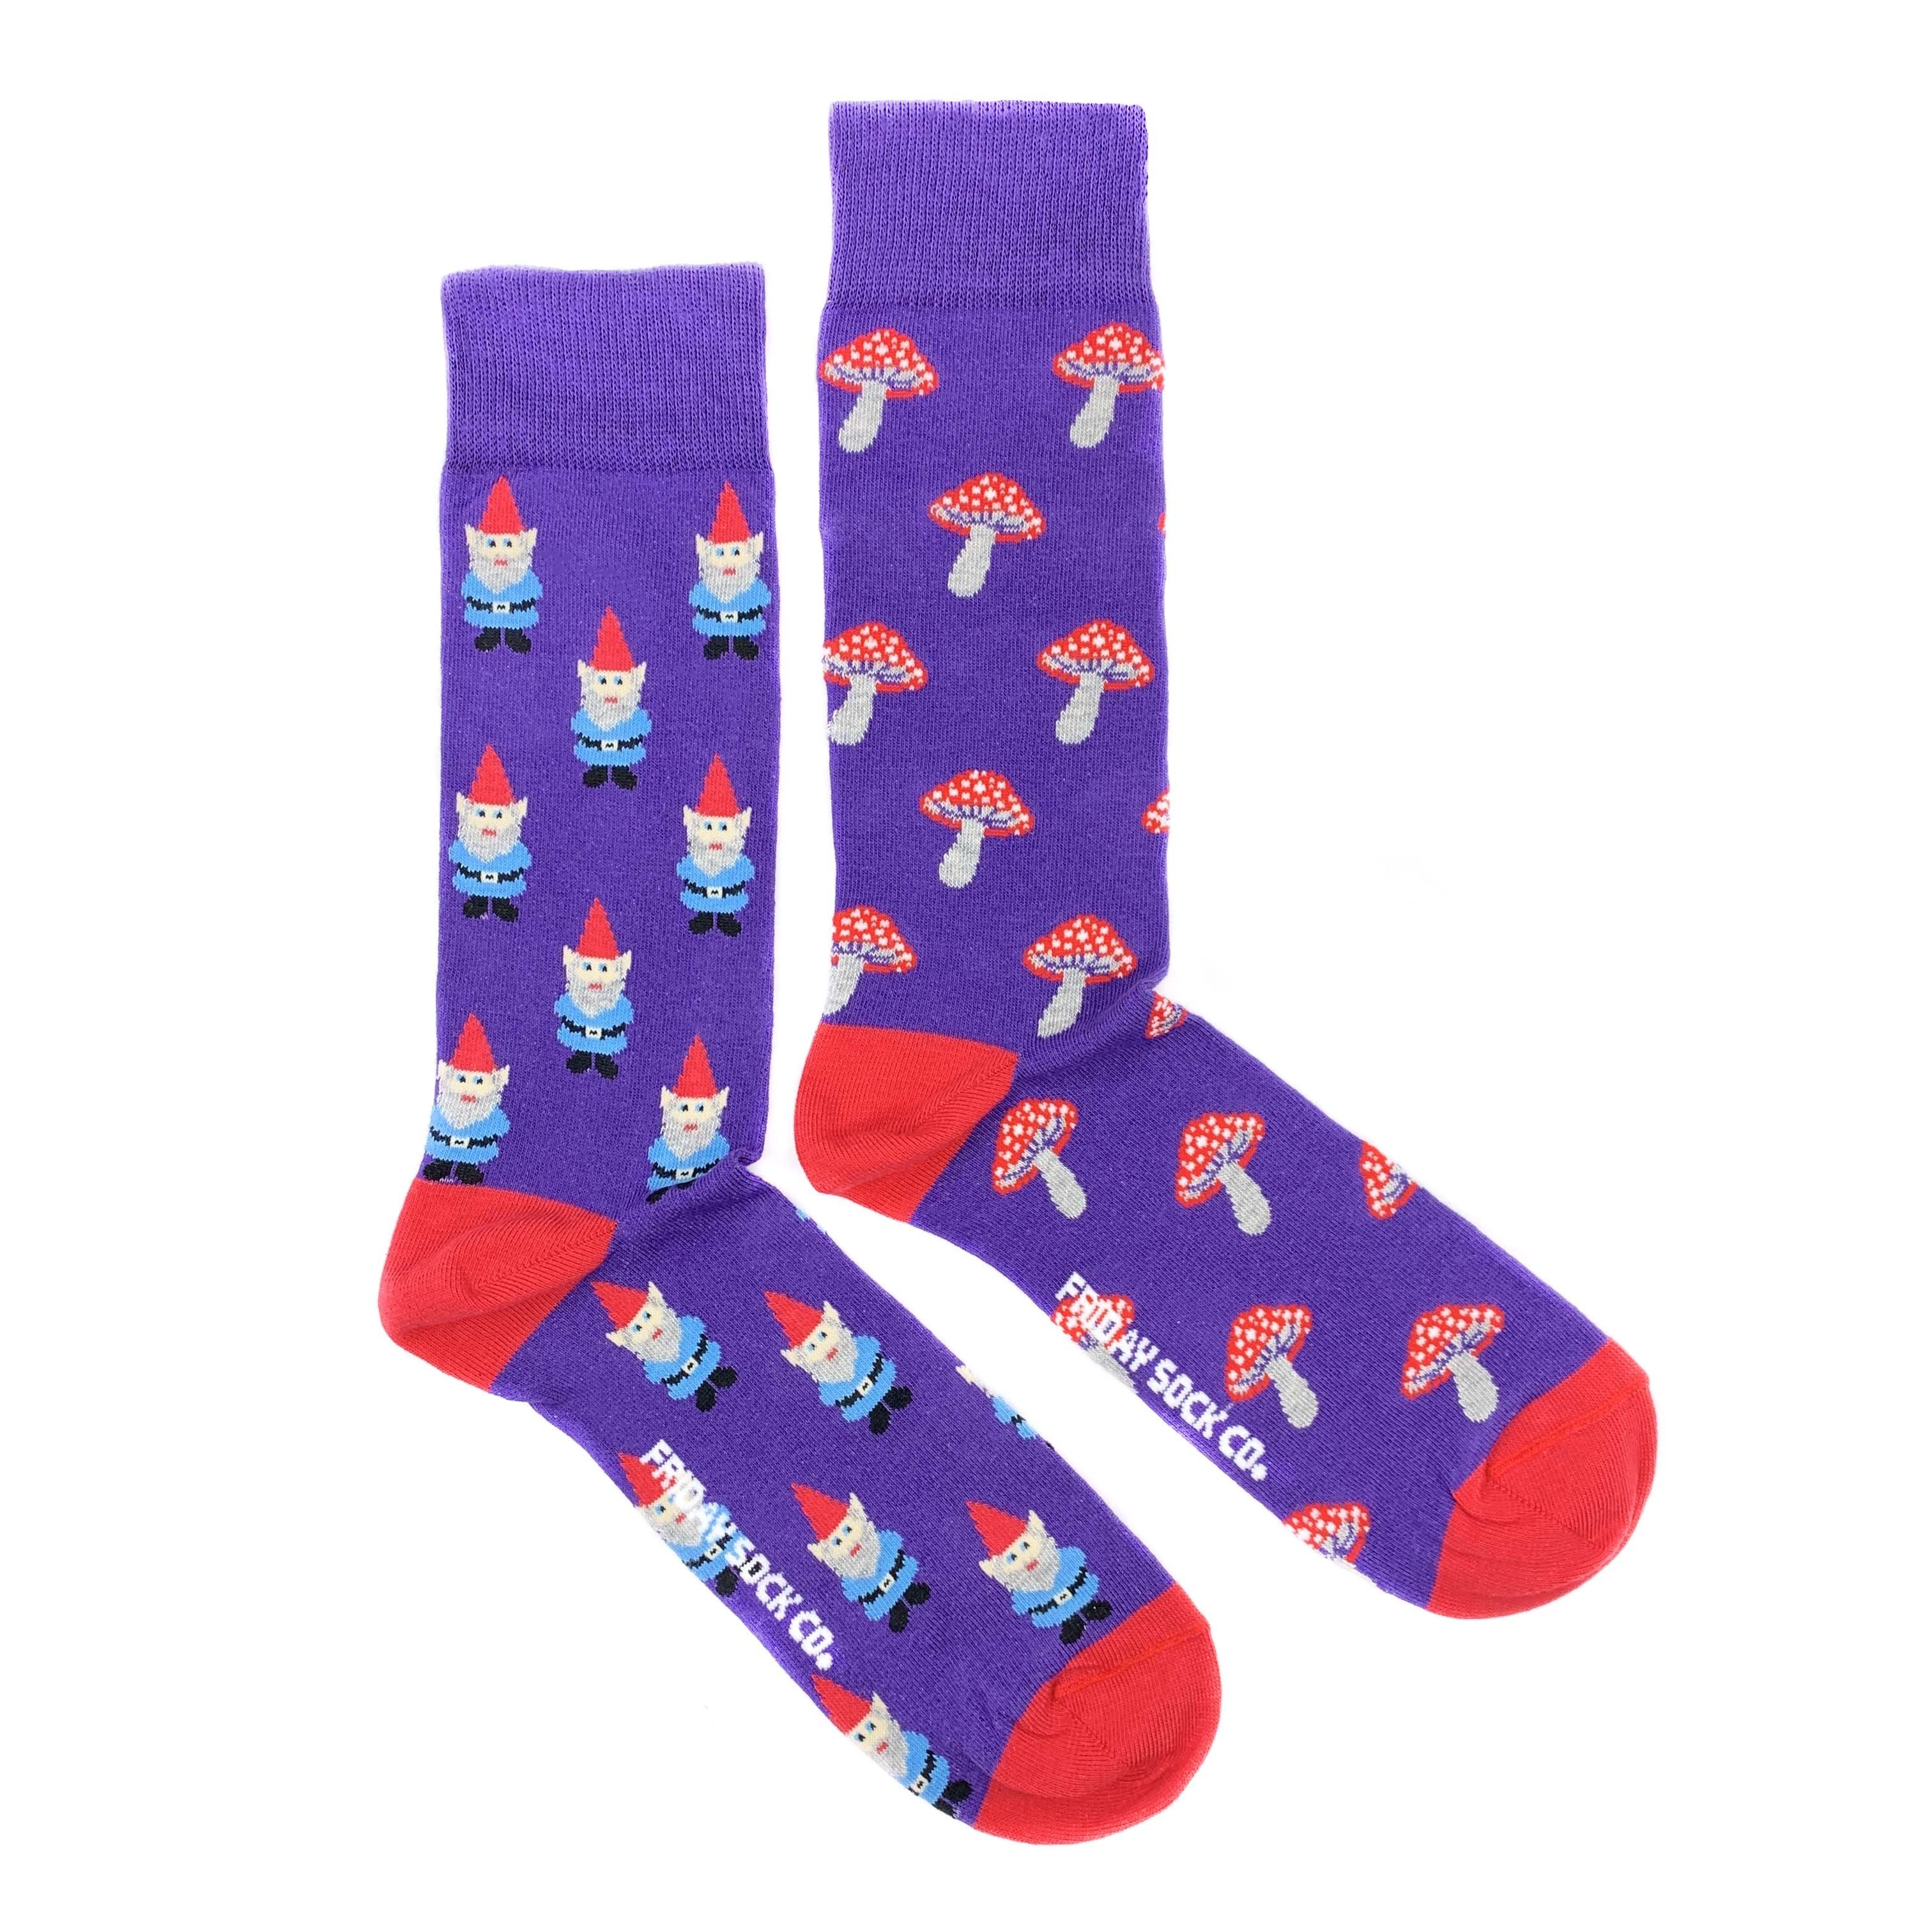 Friday Sock Co. -  Men's Gnomes & Mushrooms